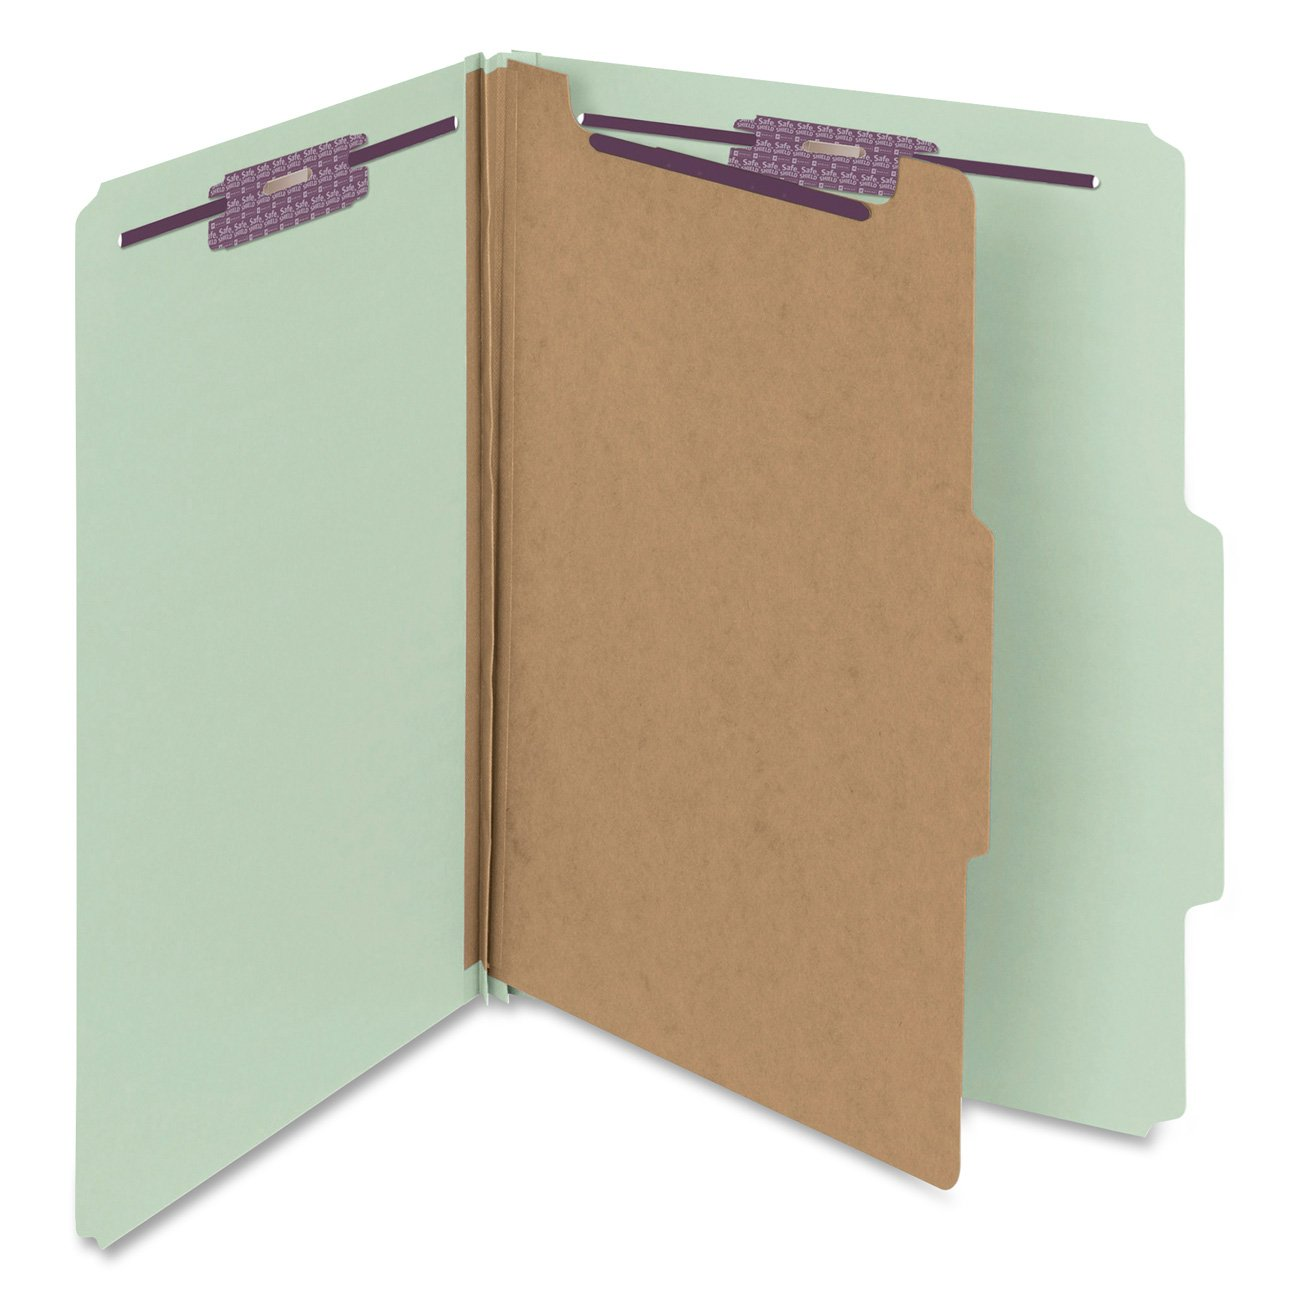 Smead Pressboard Classification File Folder with SafeSHIELD Fasteners, 1 Divider, 2'' Expansion, Letter Size, Gray/Green, 10 per Box (13776)